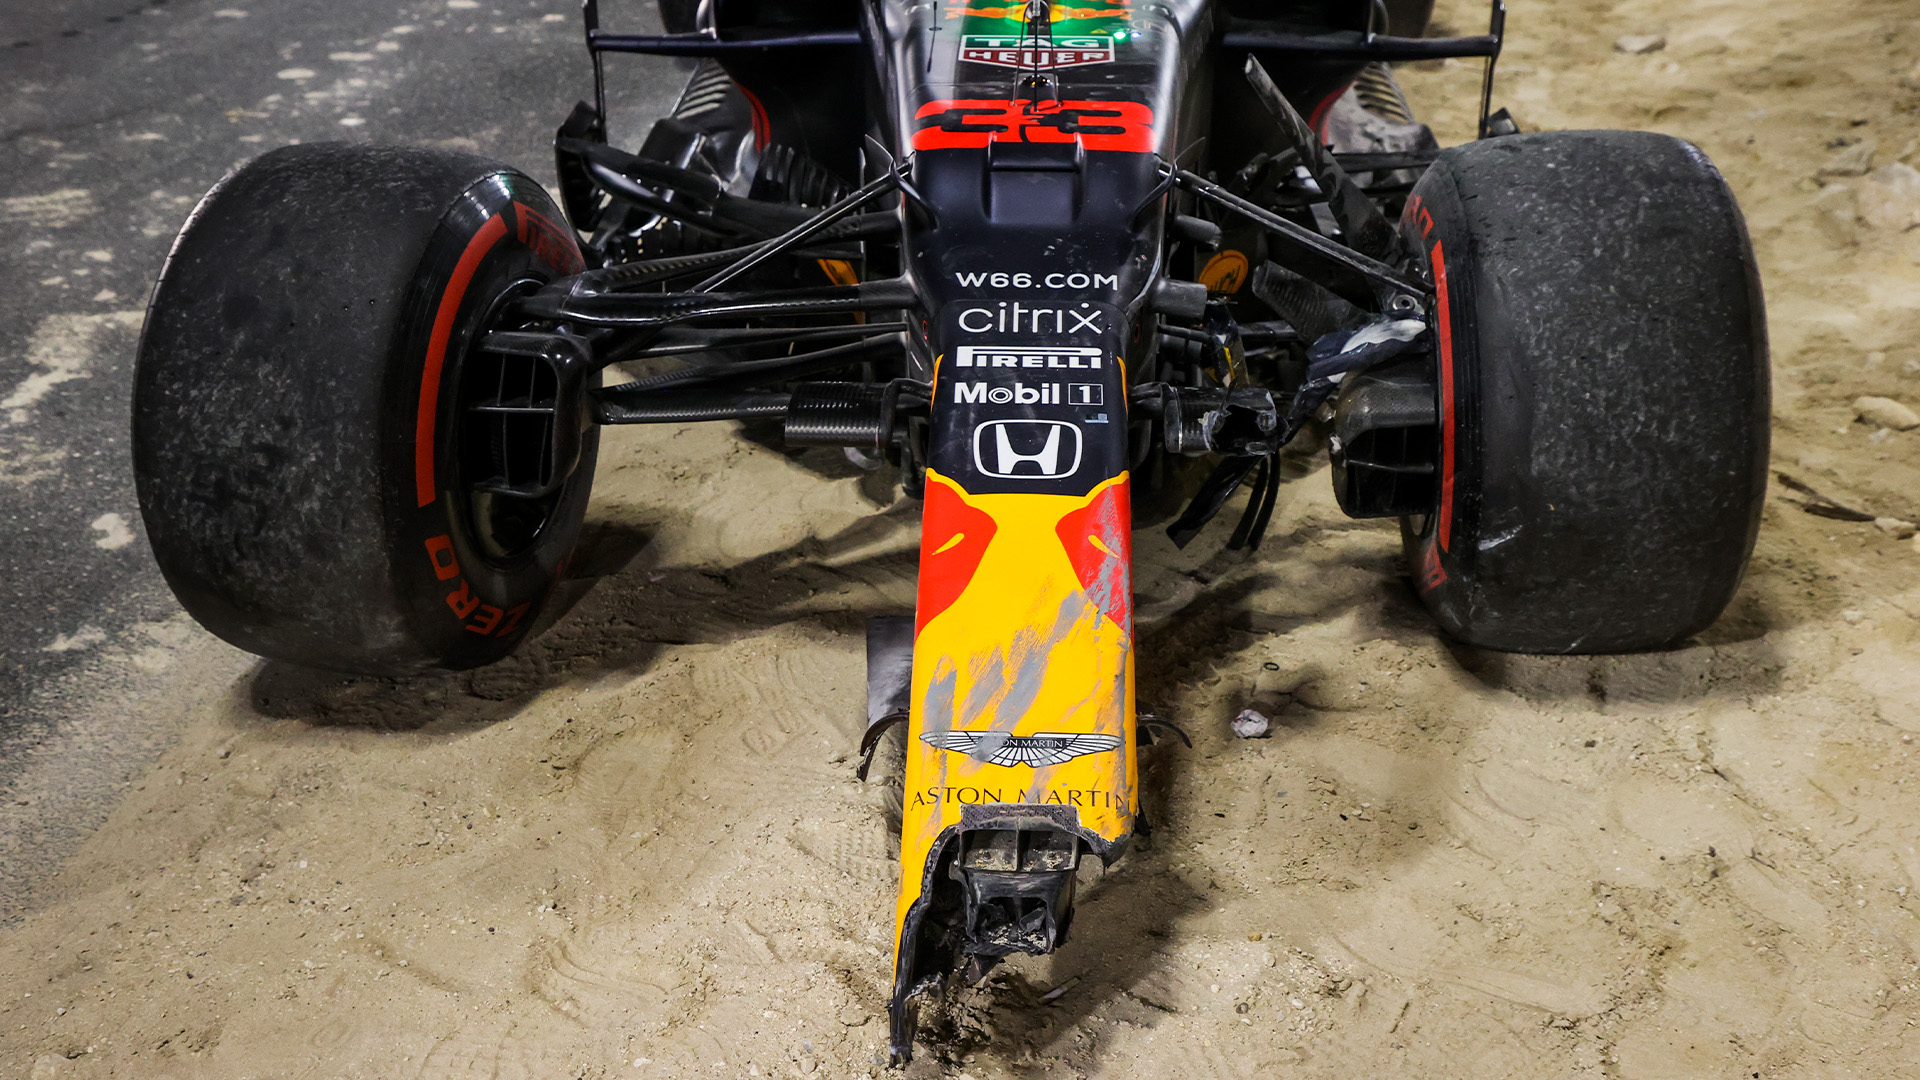 Verstappen's damaged Red Bull after crashing with at the Sakhir Grand Prix